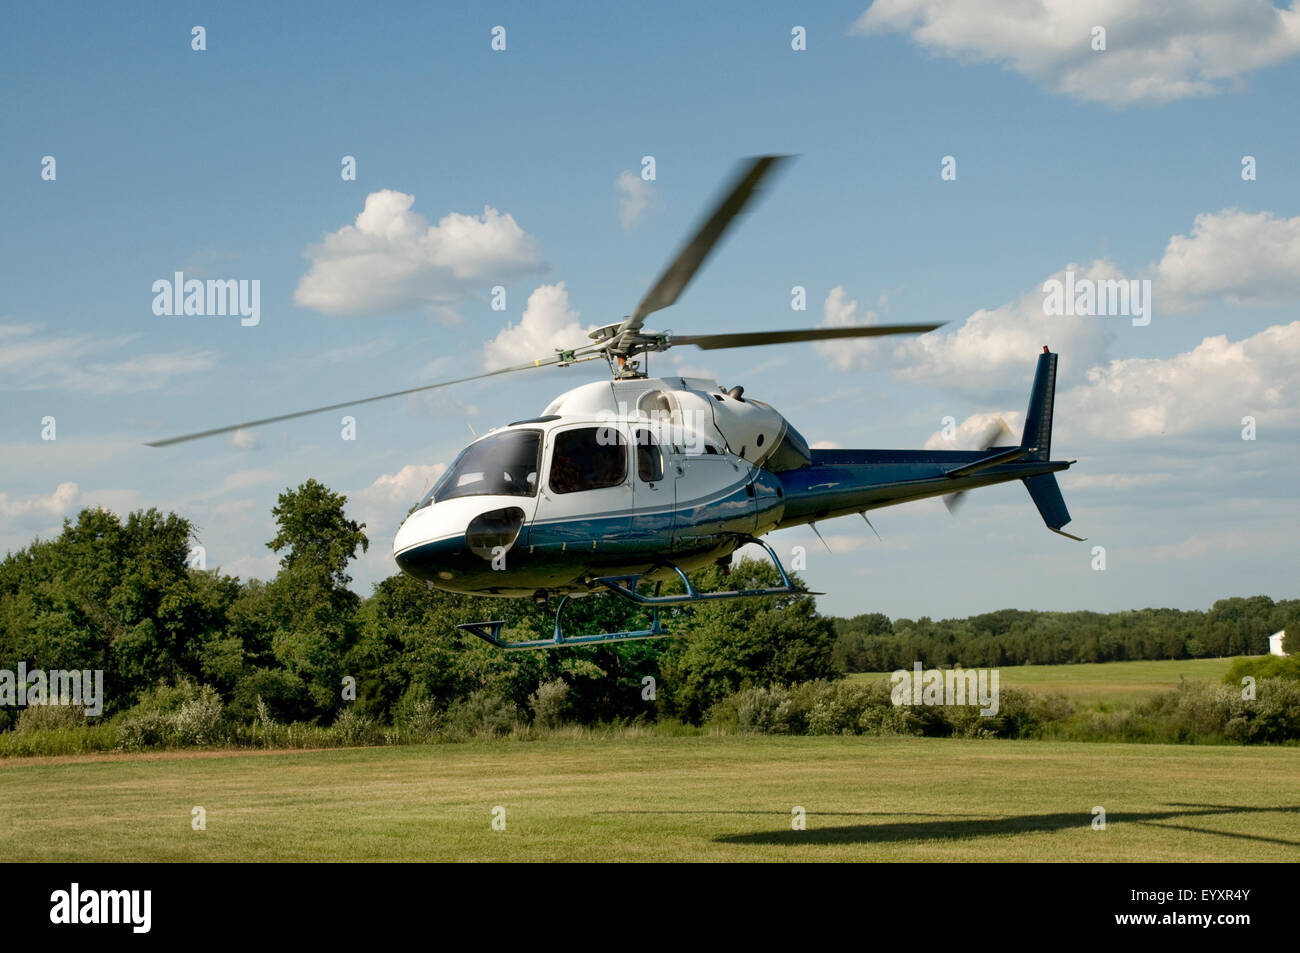 Blue and white helicopter taking off or landing in a field Stock Photo